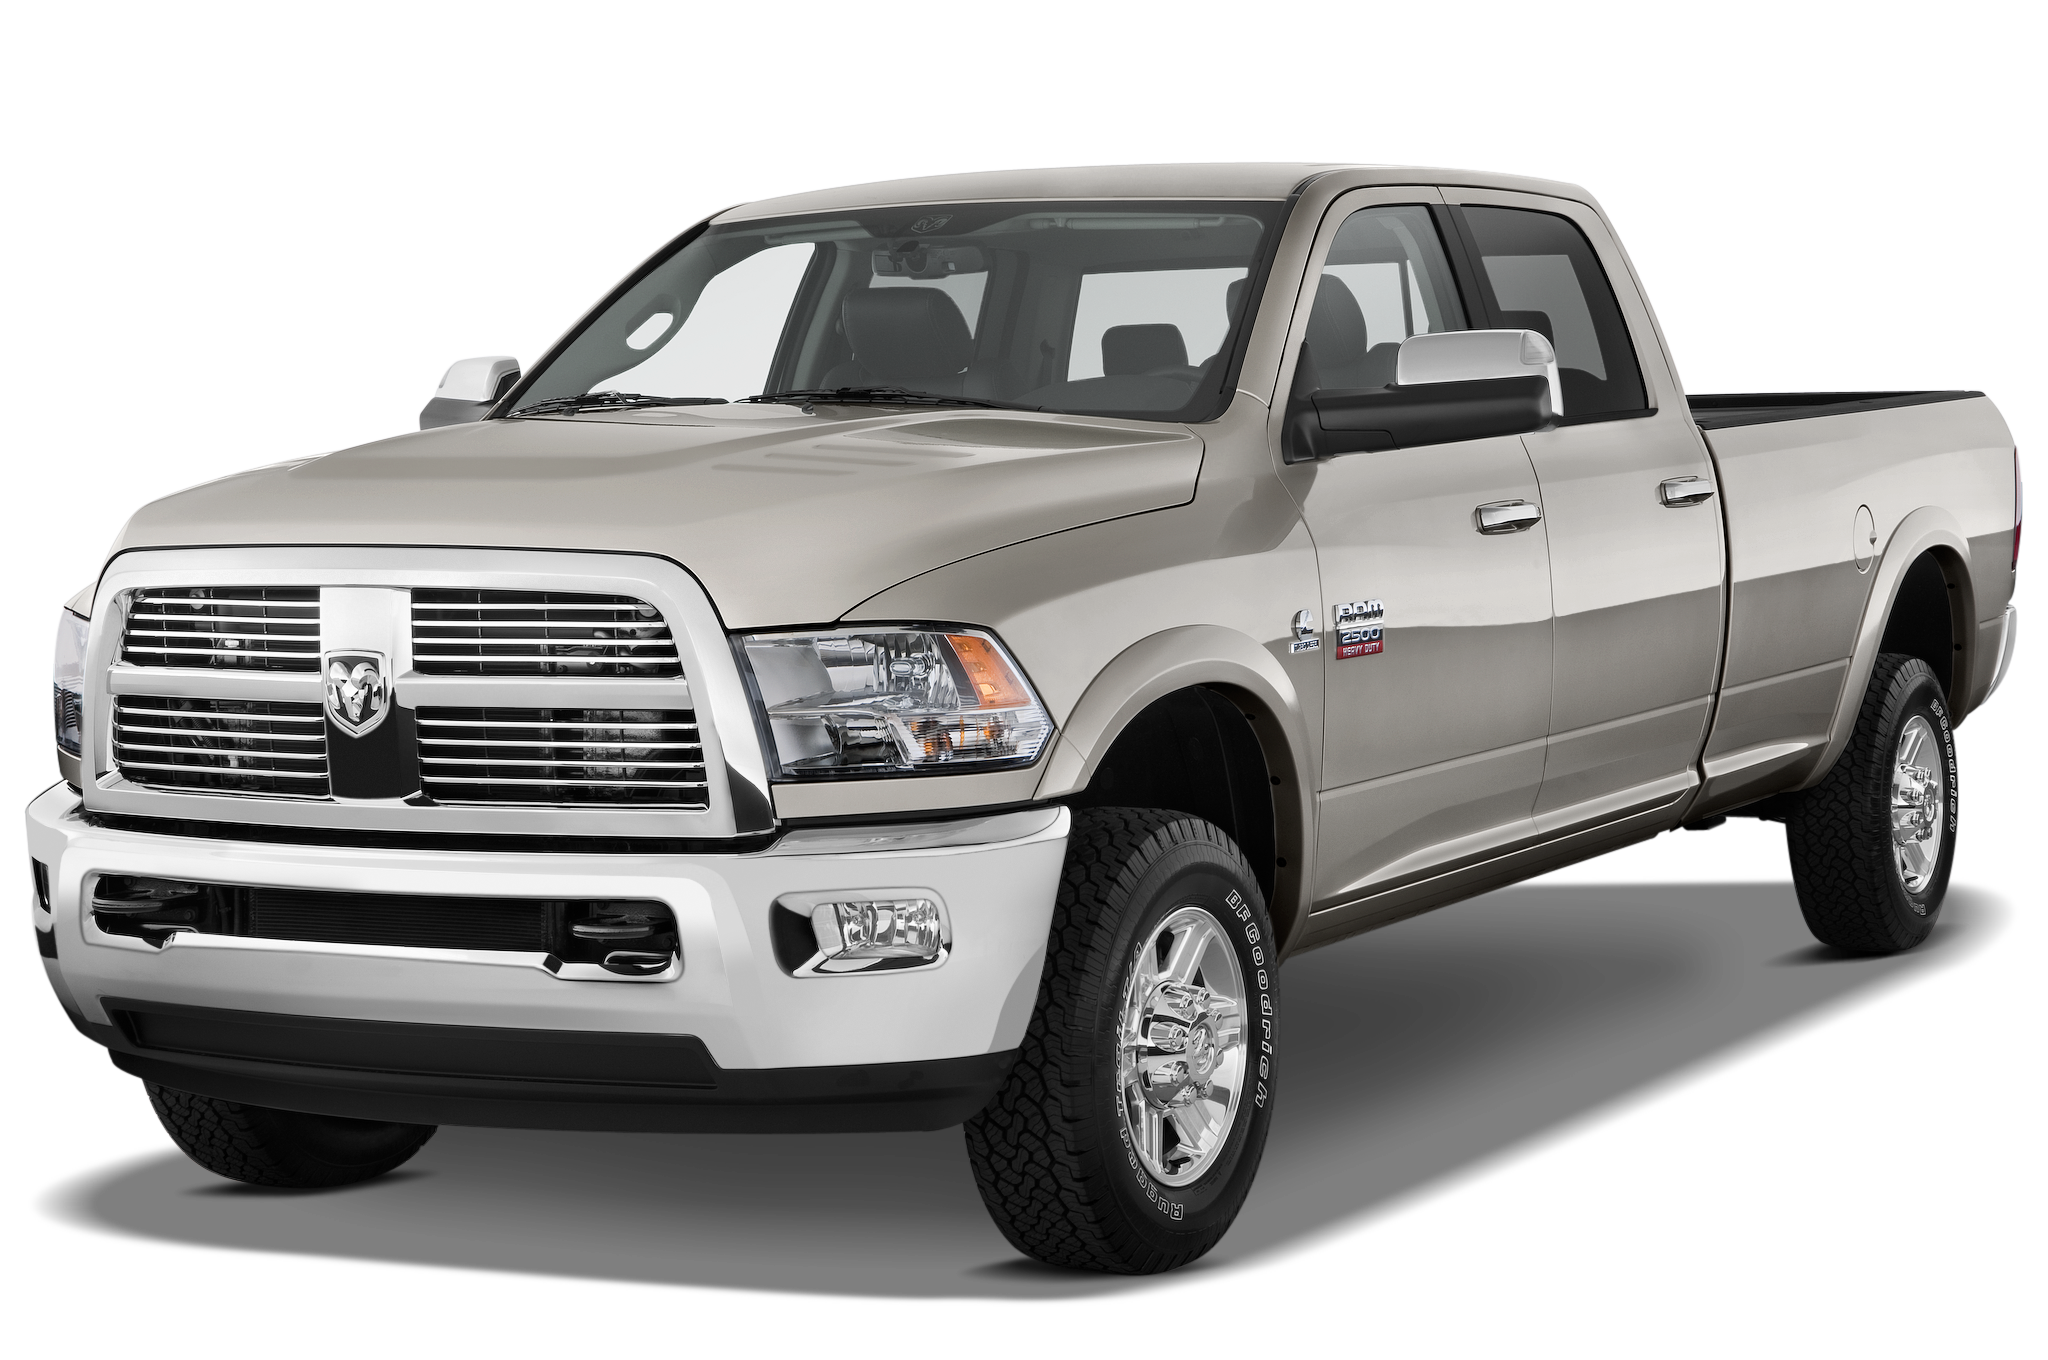 2012 ram 2500 pickup overview msn autos. Black Bedroom Furniture Sets. Home Design Ideas